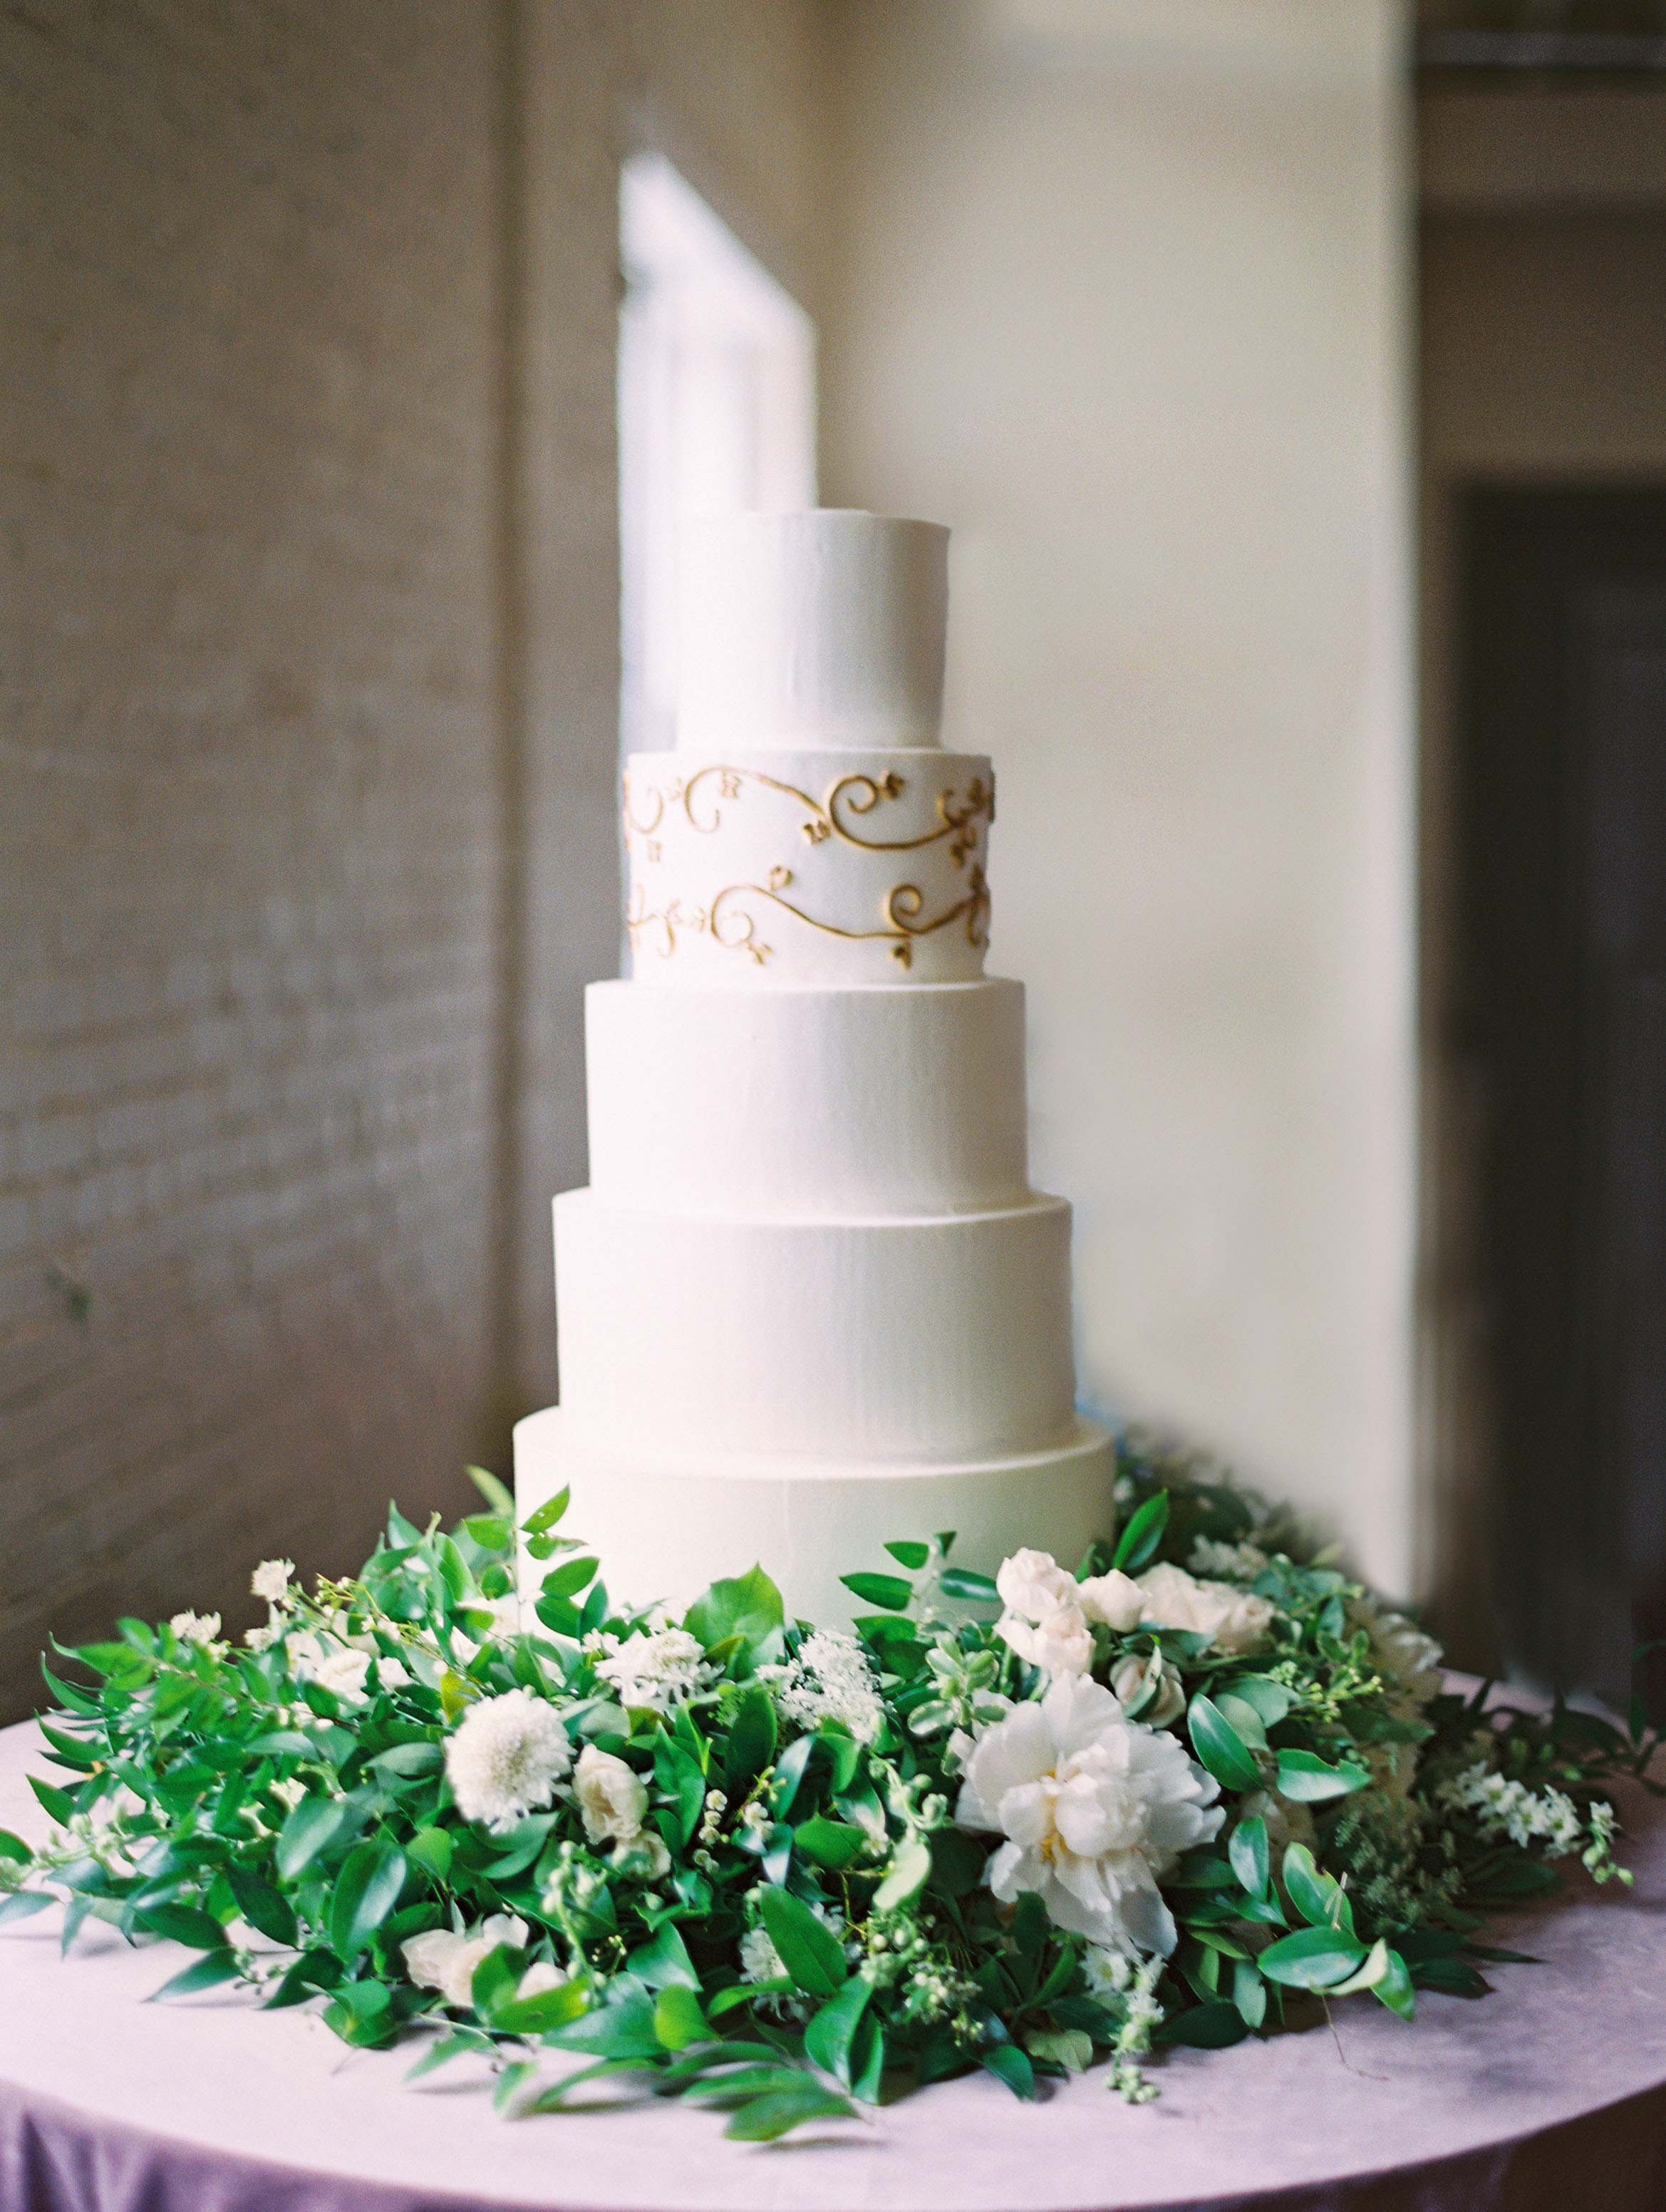 wreathed cake with stacked levels